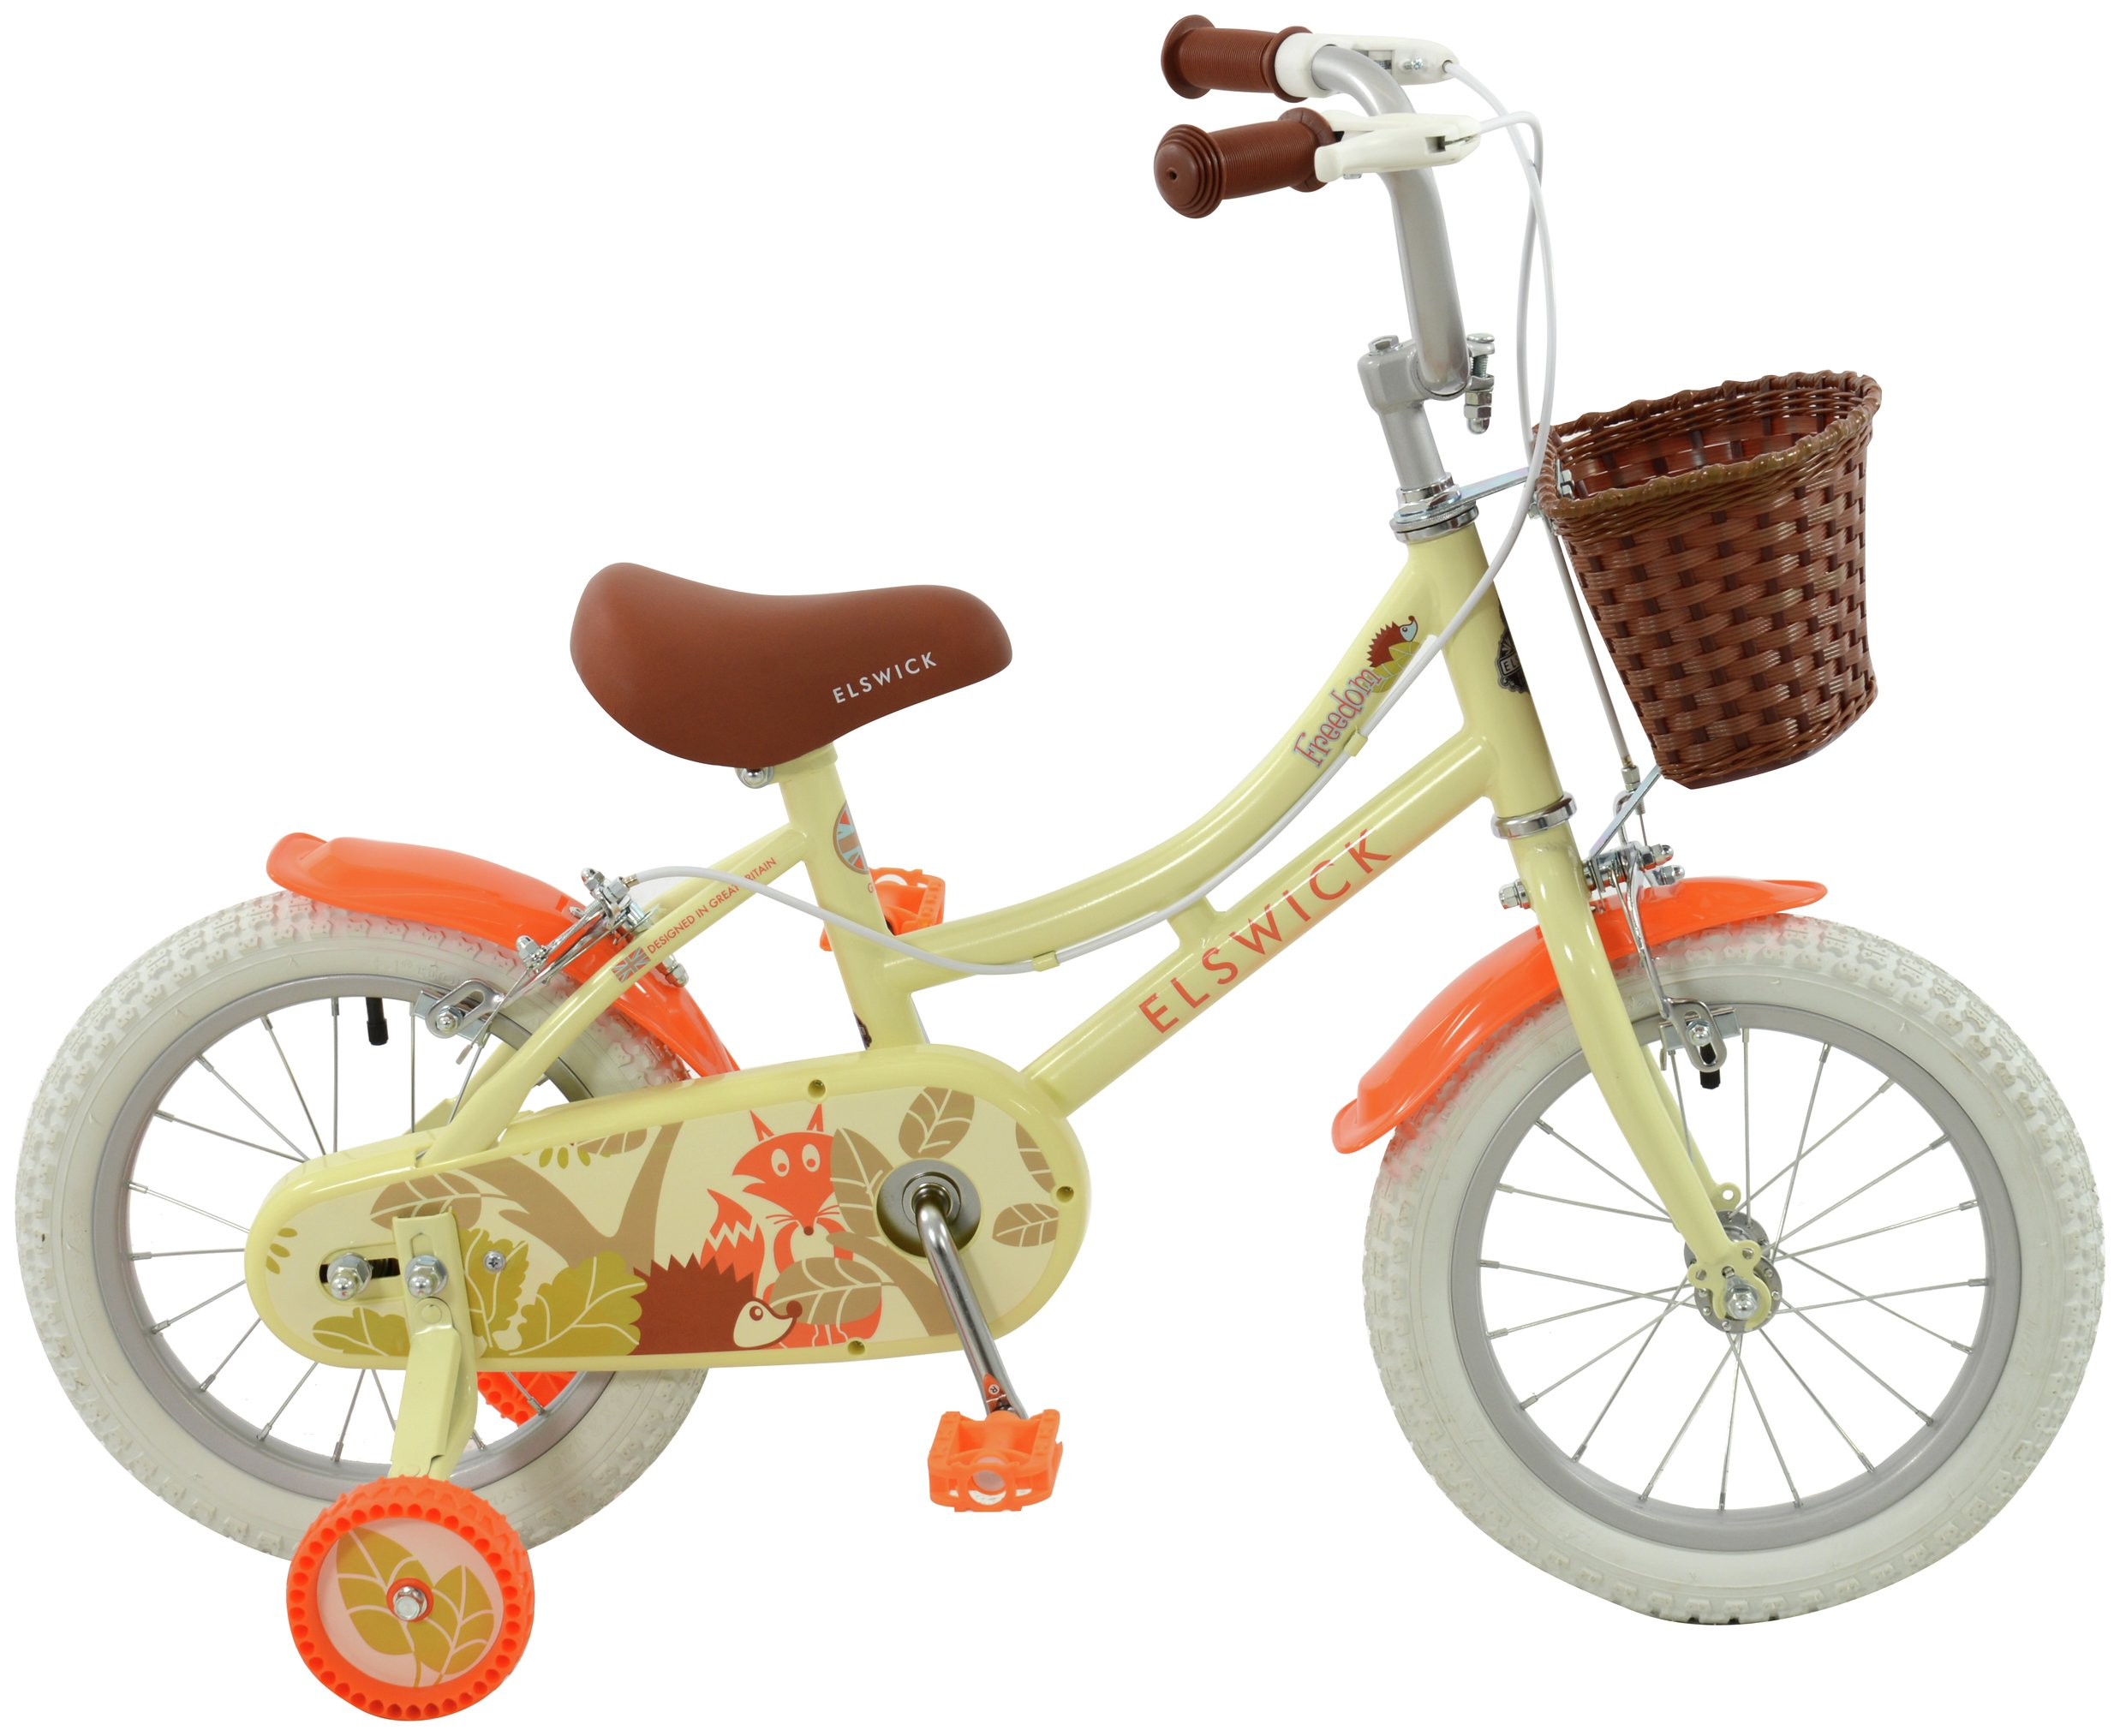 Image of Elswick Freedom Kids 14 Inch Heritage Bike